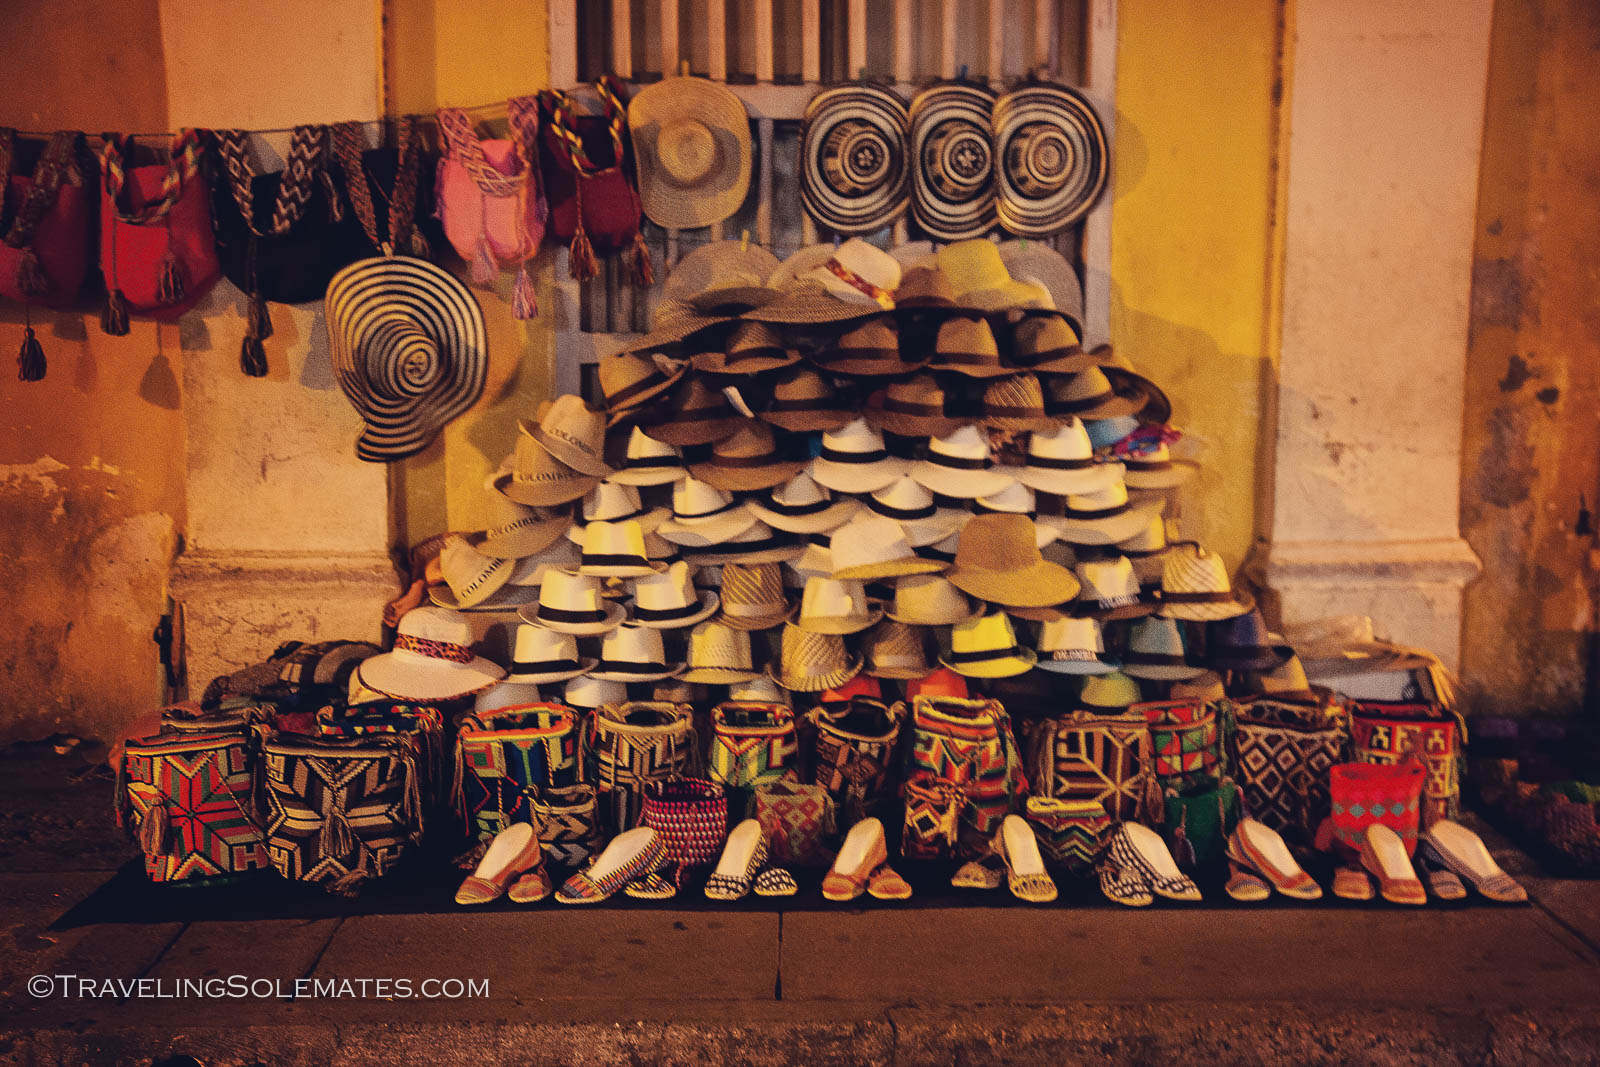 Street shopping stall in Old Cartegena, Colombia